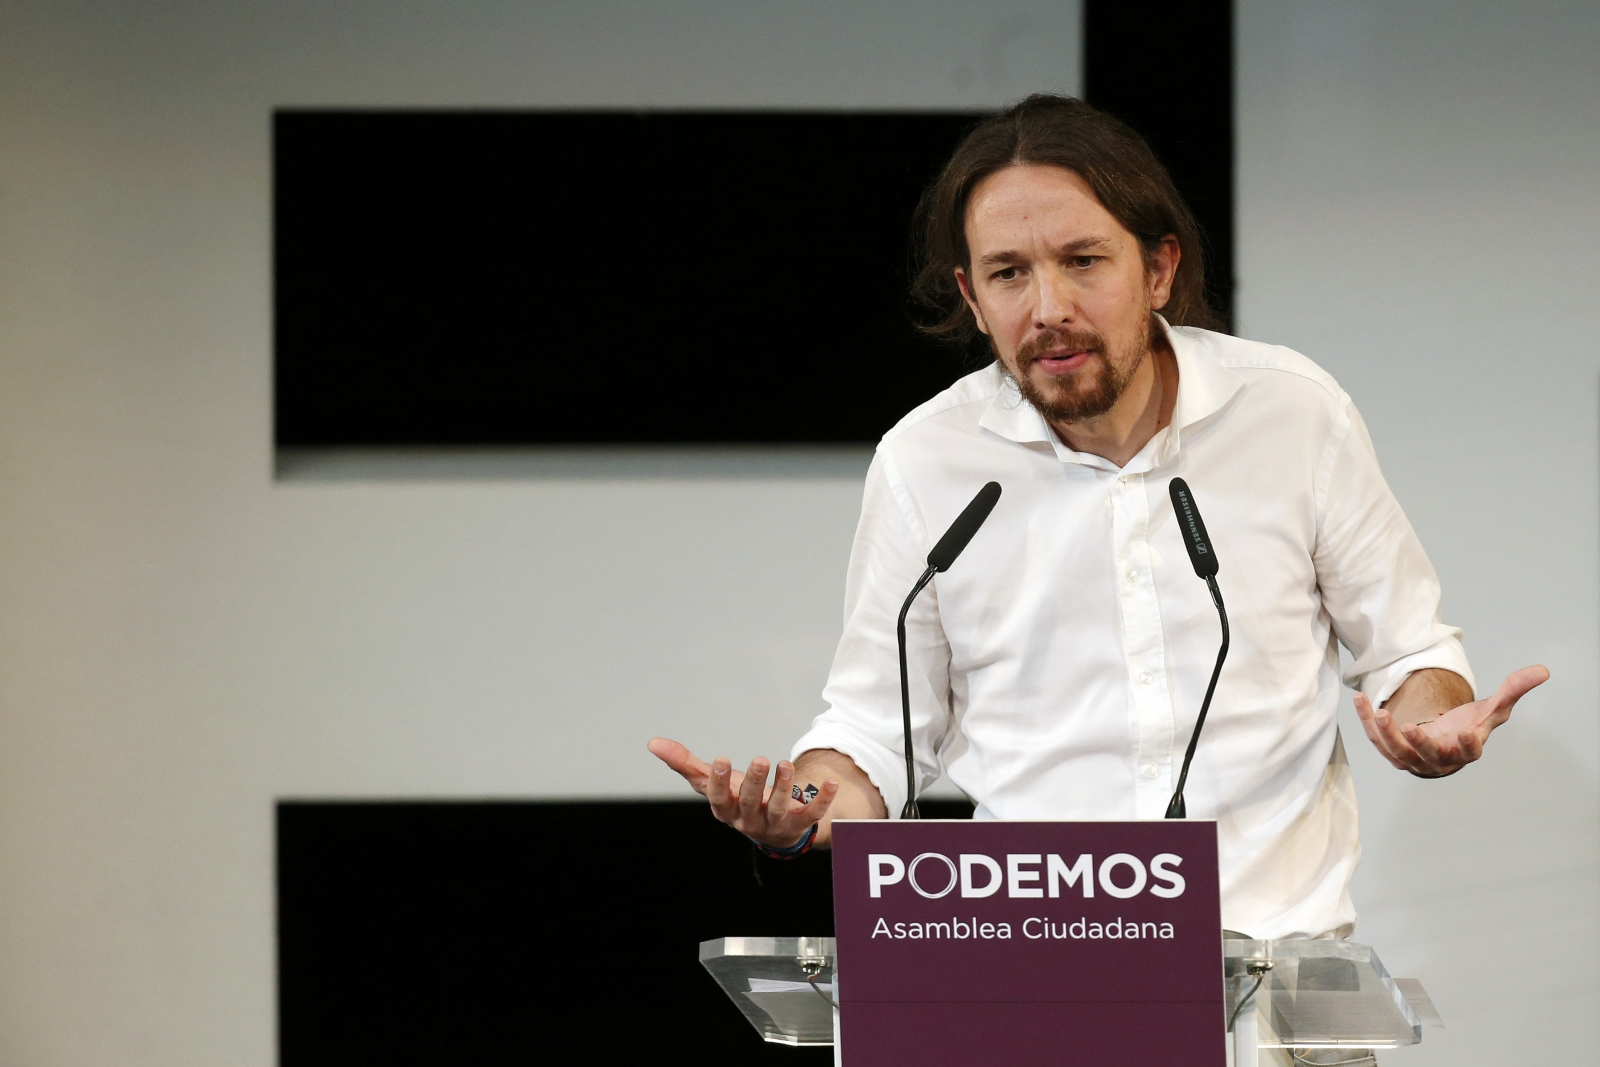 Podemos ('We can') Secretary General Pablo Iglesias speaks during a meeting in central Madrid November 15, 2014